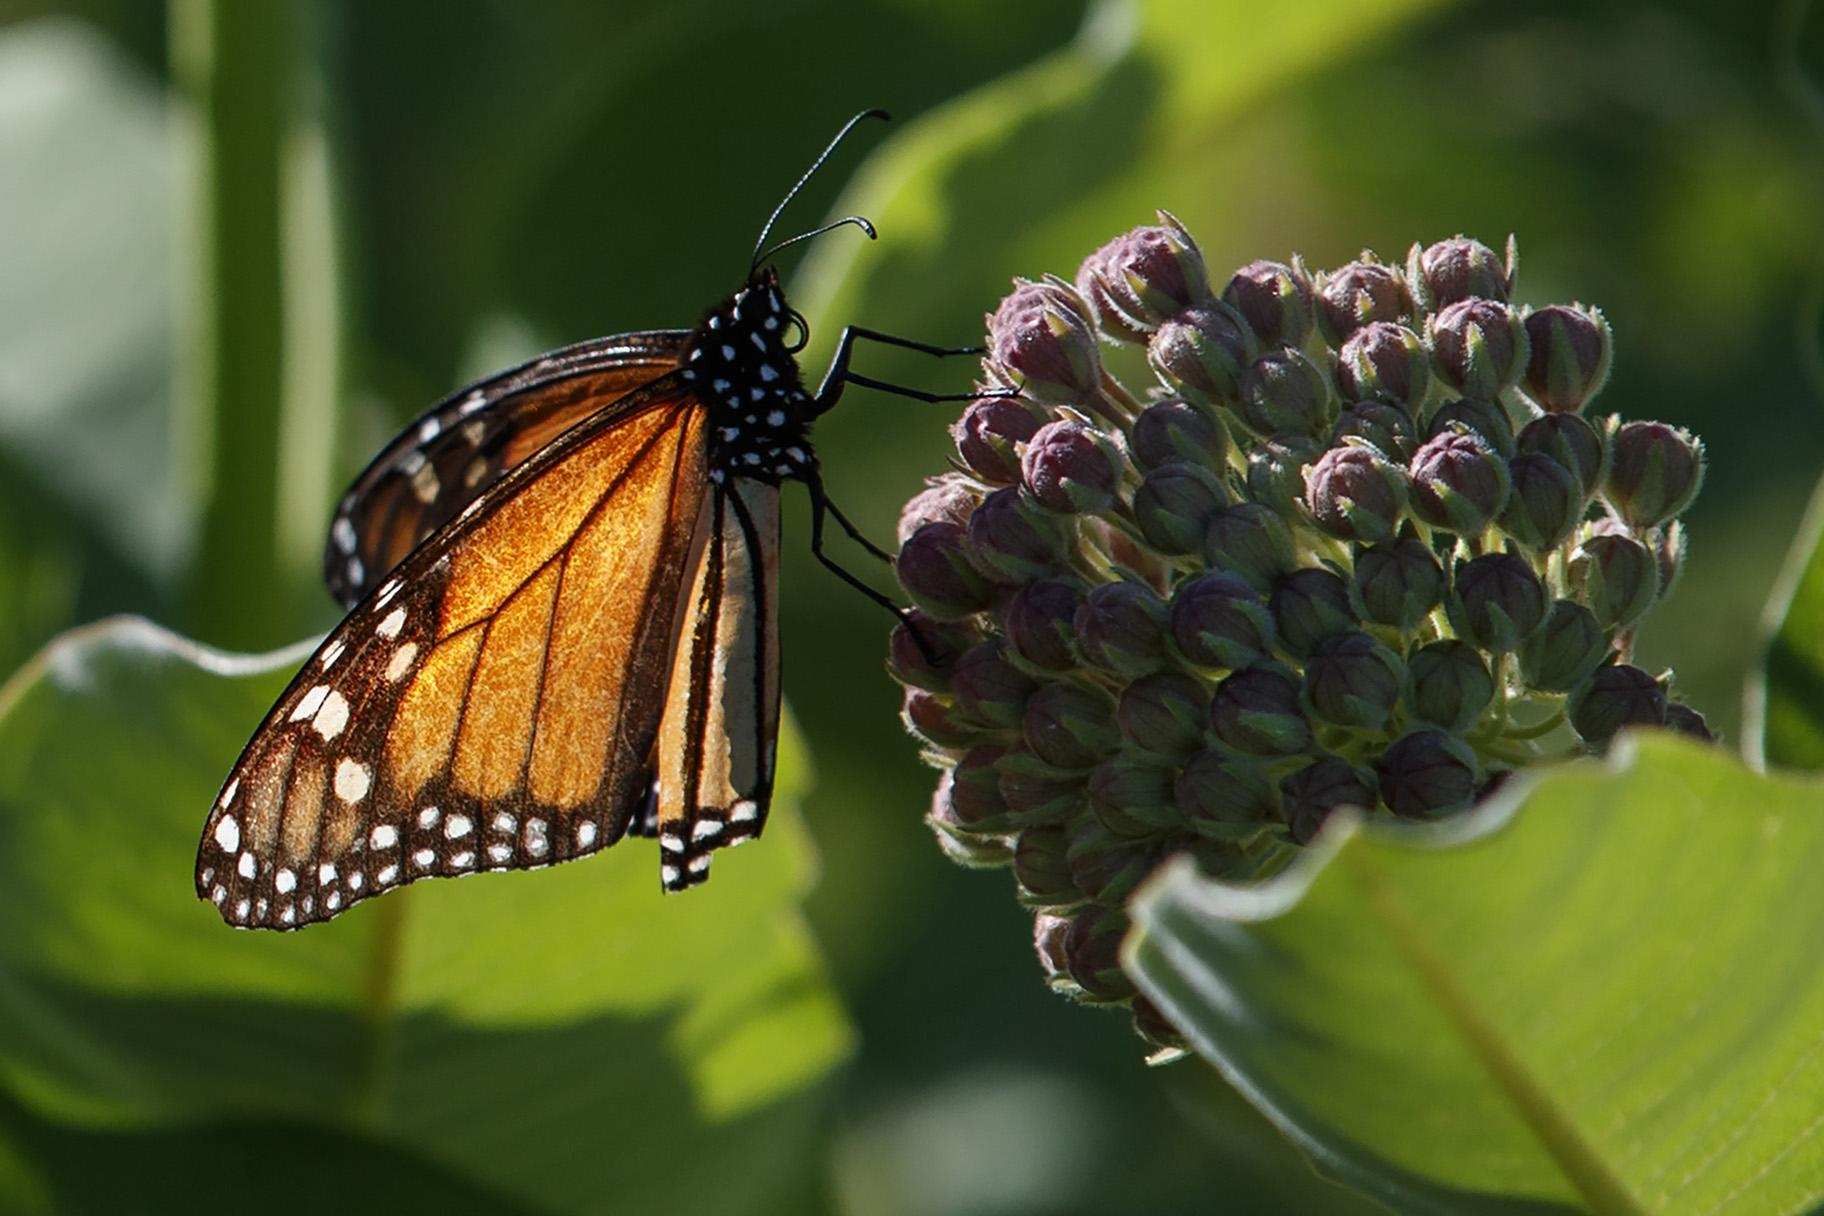 A monarch butterfly perches on milkweed at the Patuxent Wildlife Research Center in Laurel, Maryland on Friday, May 31, 2019. Farming and other human development have eradicated state-size swaths of its native milkweed habitat, cutting the butterfly's numbers by 90% over the last two decades. (AP Photo / Carolyn Kaster)